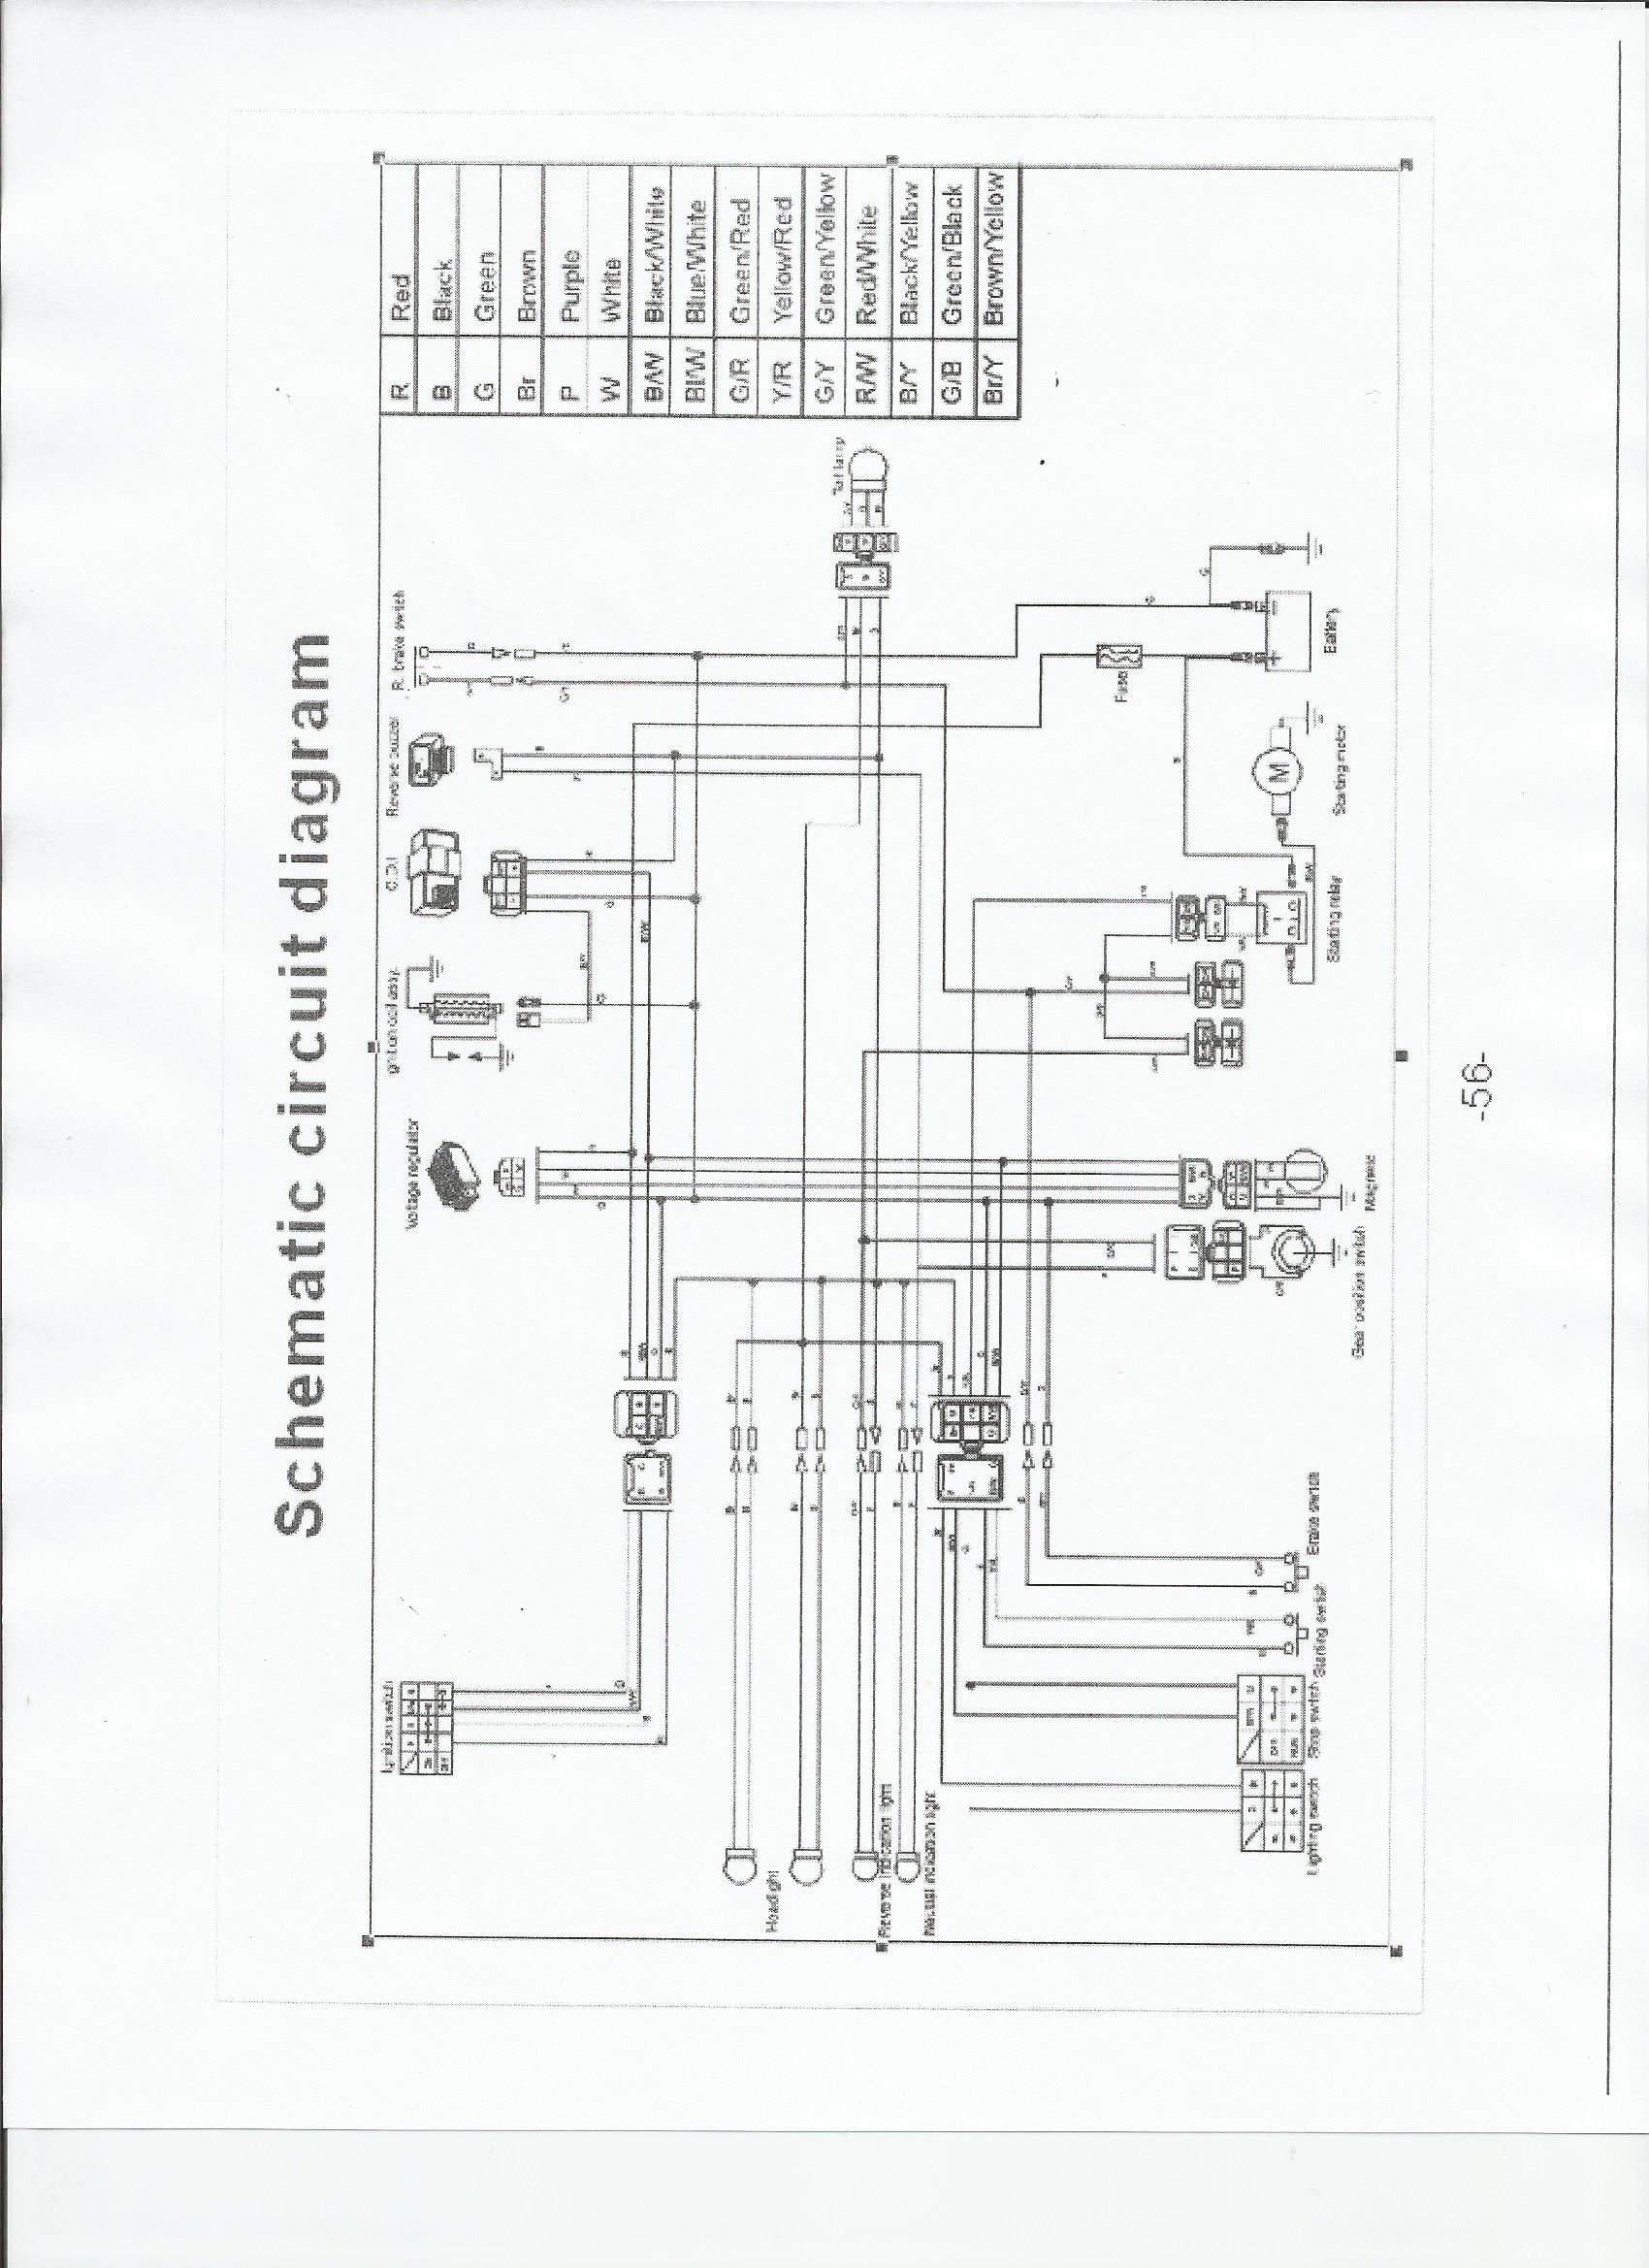 tao tao wiring schematic taotao mini and youth atv wiring schematic familygokarts support Sunl ATV Wiring Diagram at crackthecode.co